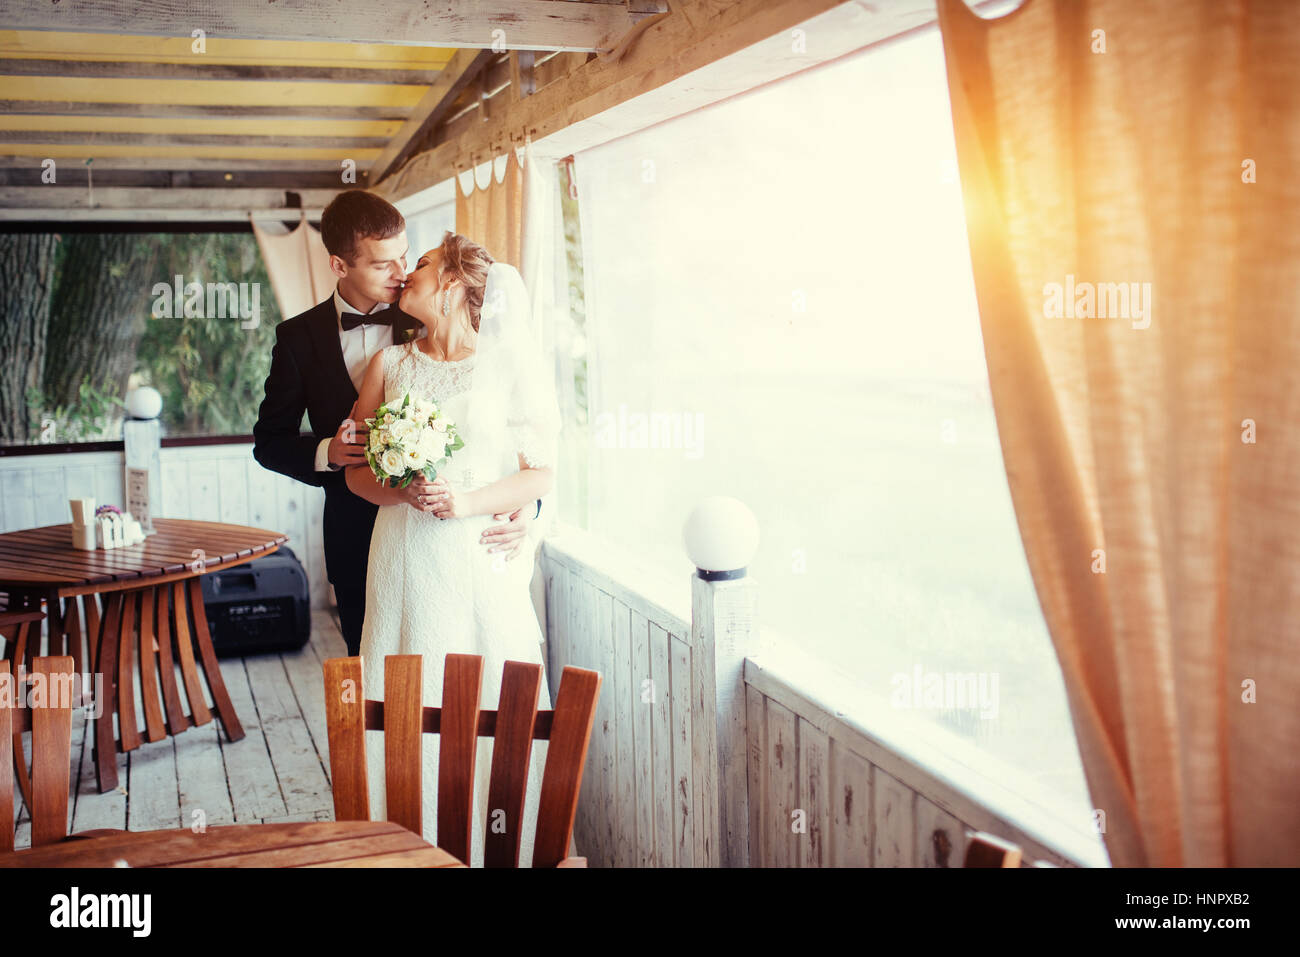 Bride and groom in the cafe an outdoor  - Stock Image